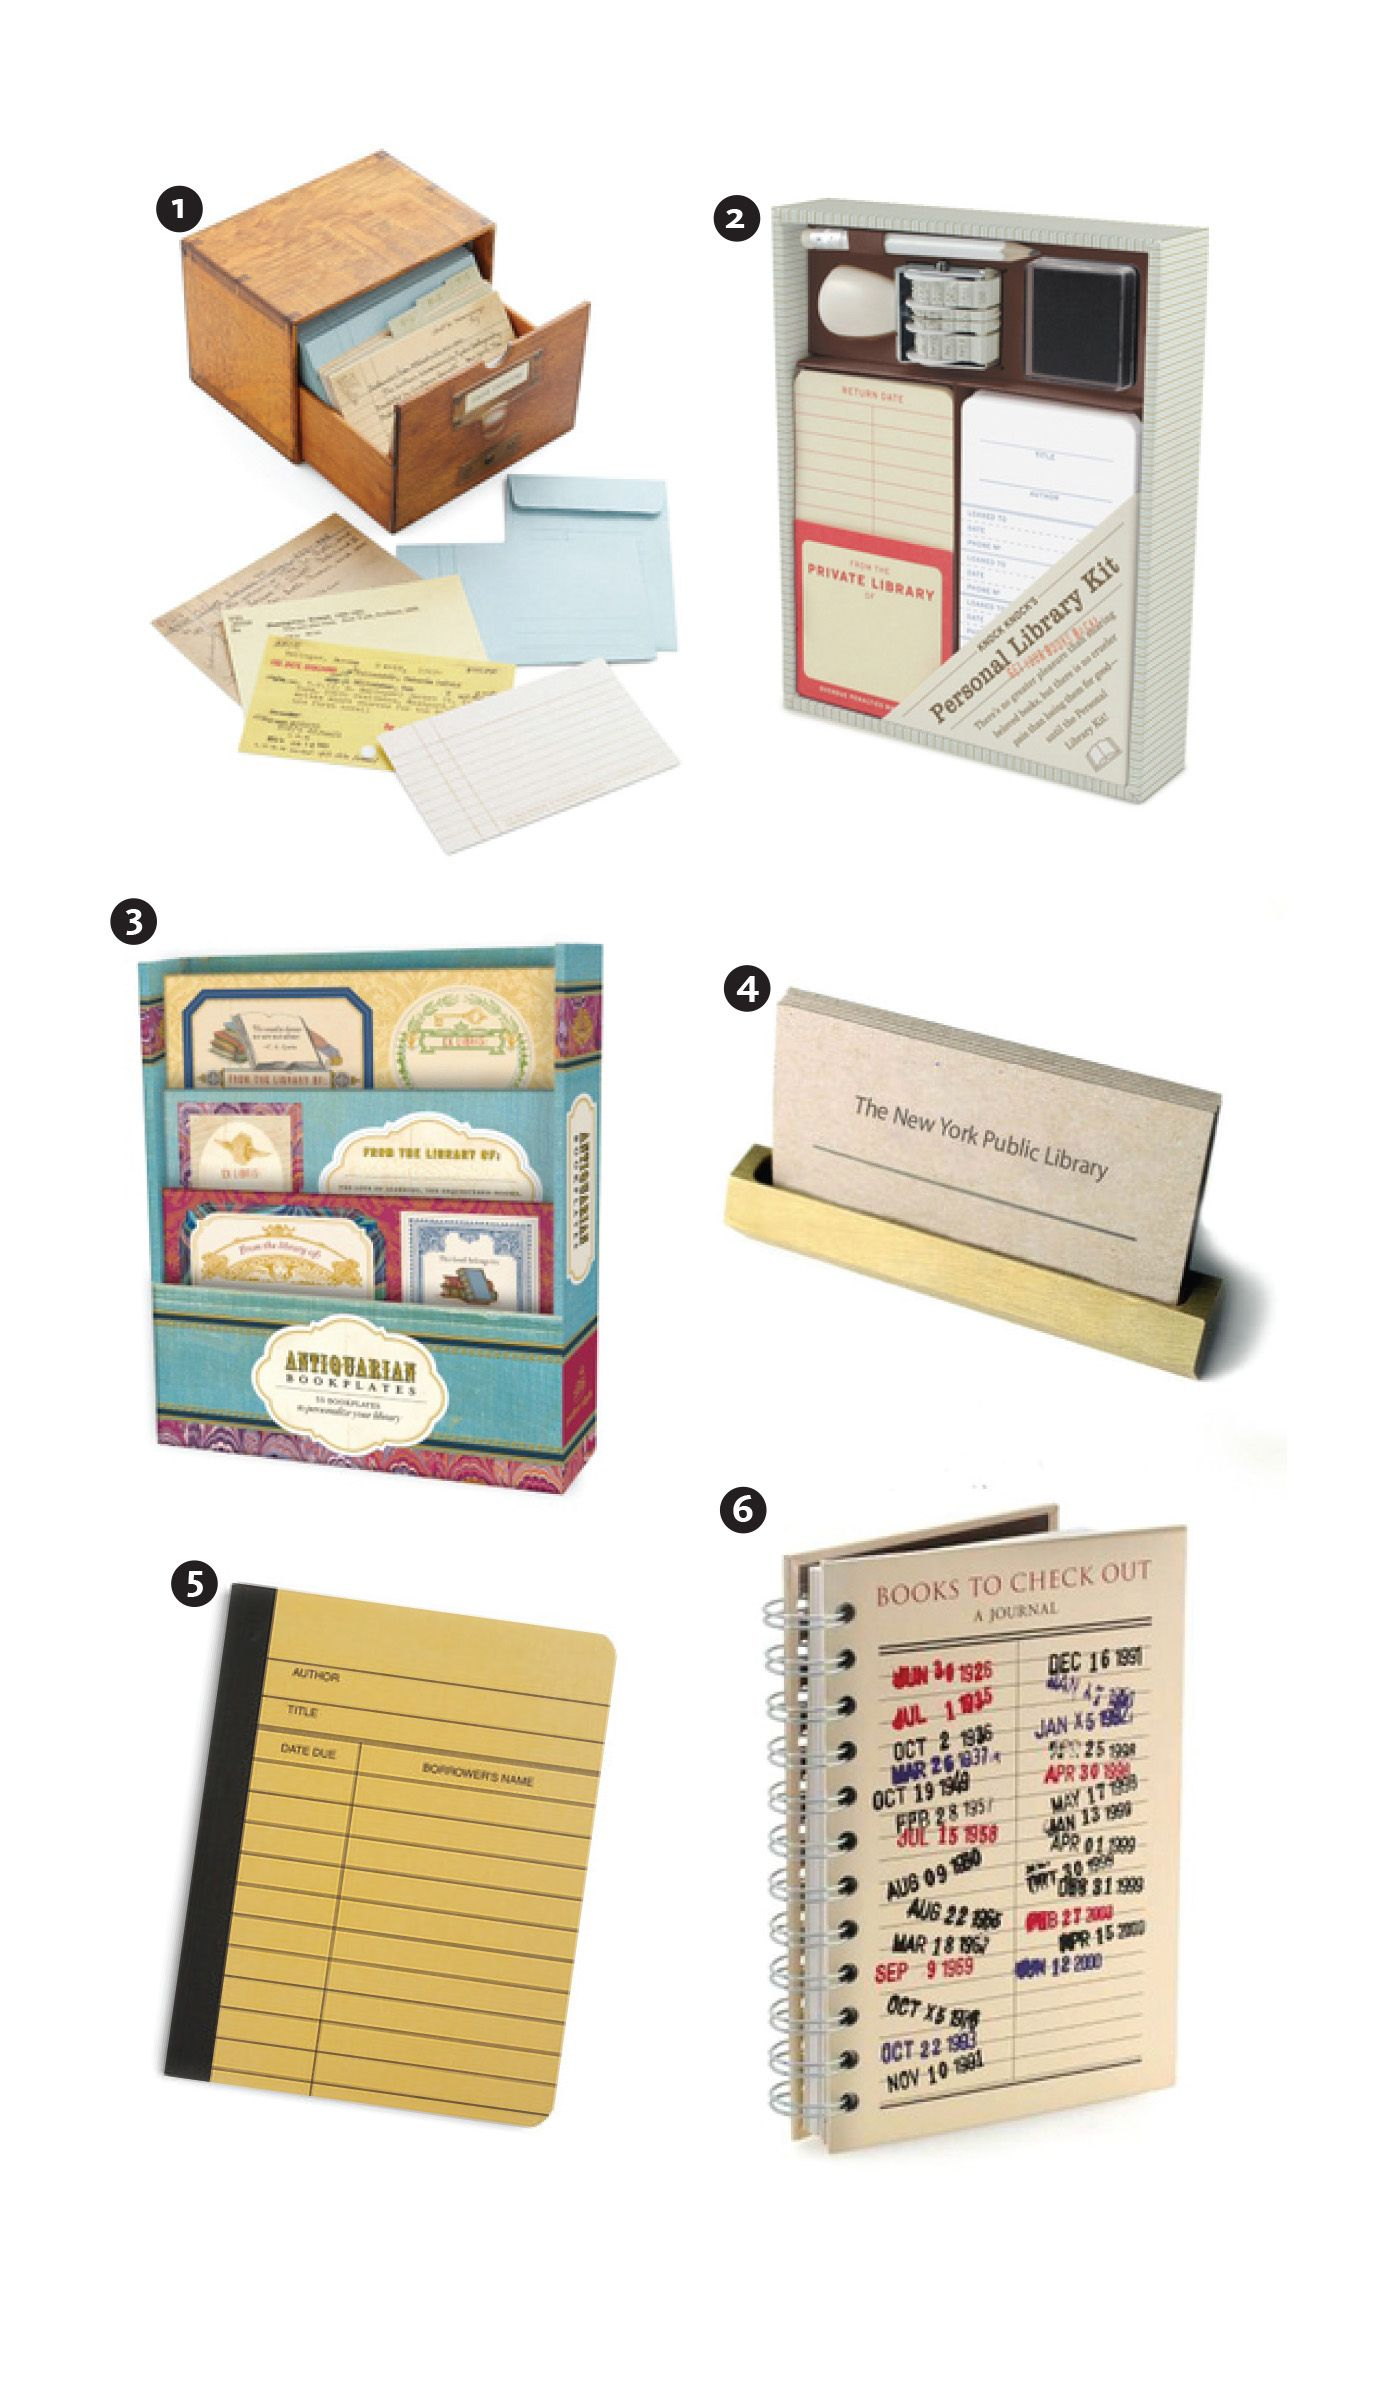 Create your own library at home with these lovely items 1 card create your own library at home with these lovely items card catalog personal library kit antiquarian bookplates brass business card holder library card colourmoves